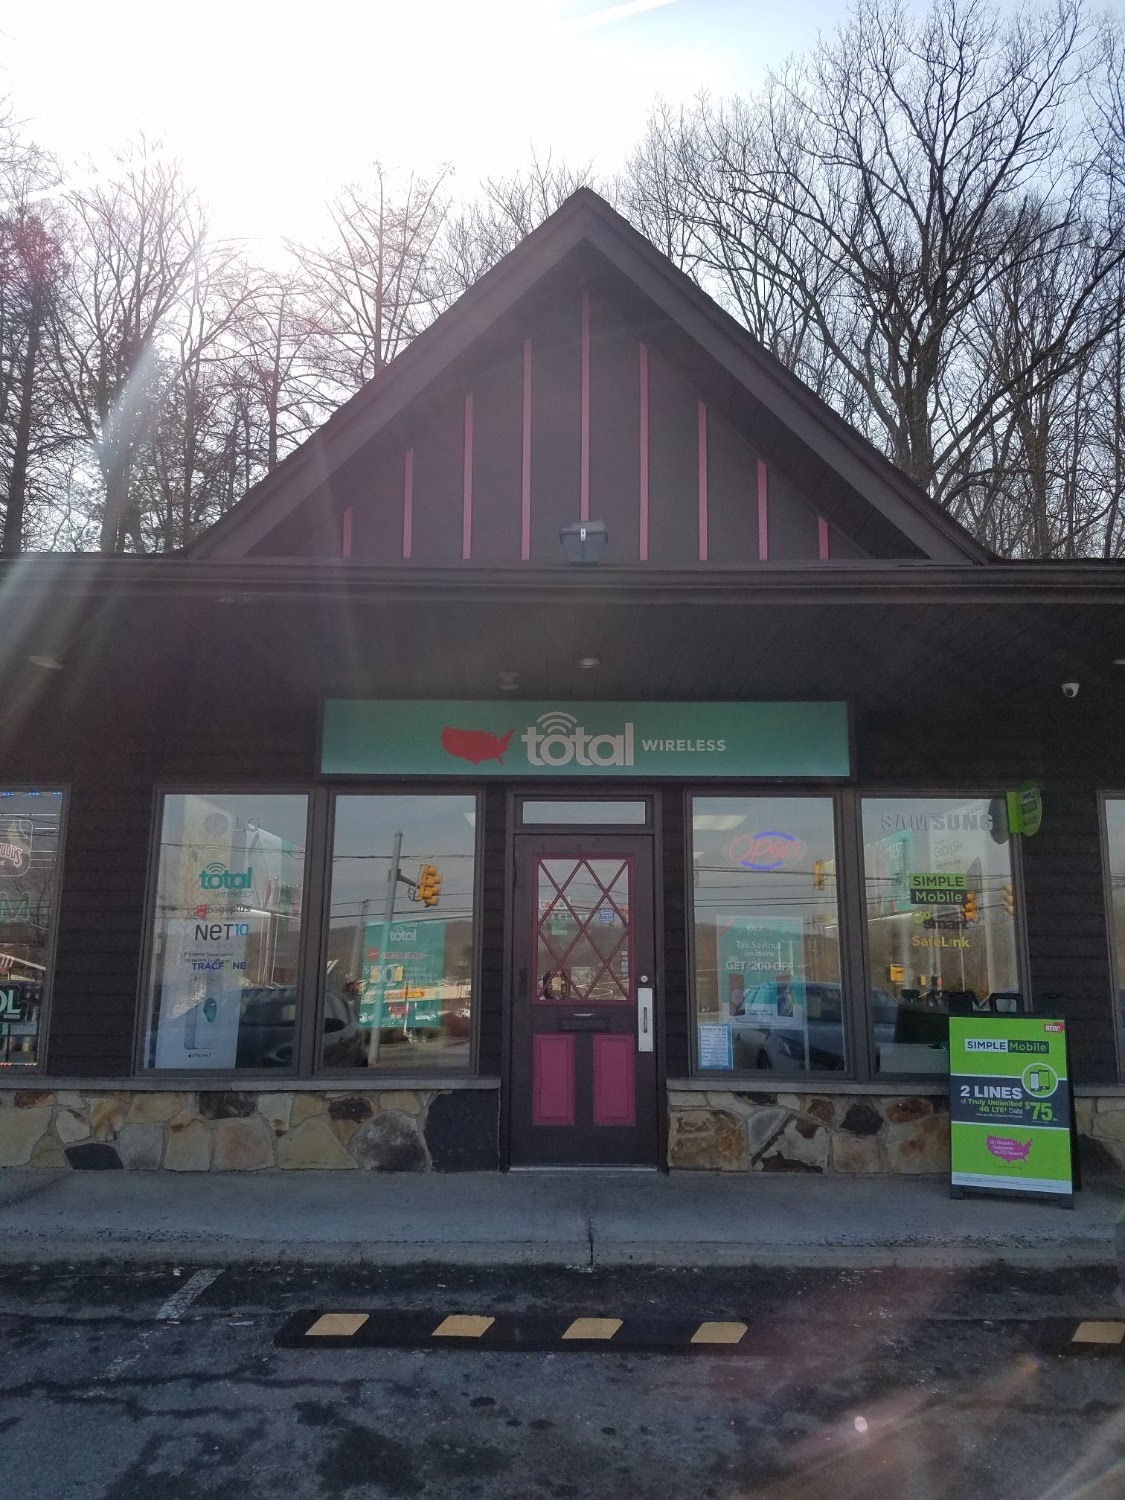 Total Wireless Store front image in East Stroudsburg,  PA